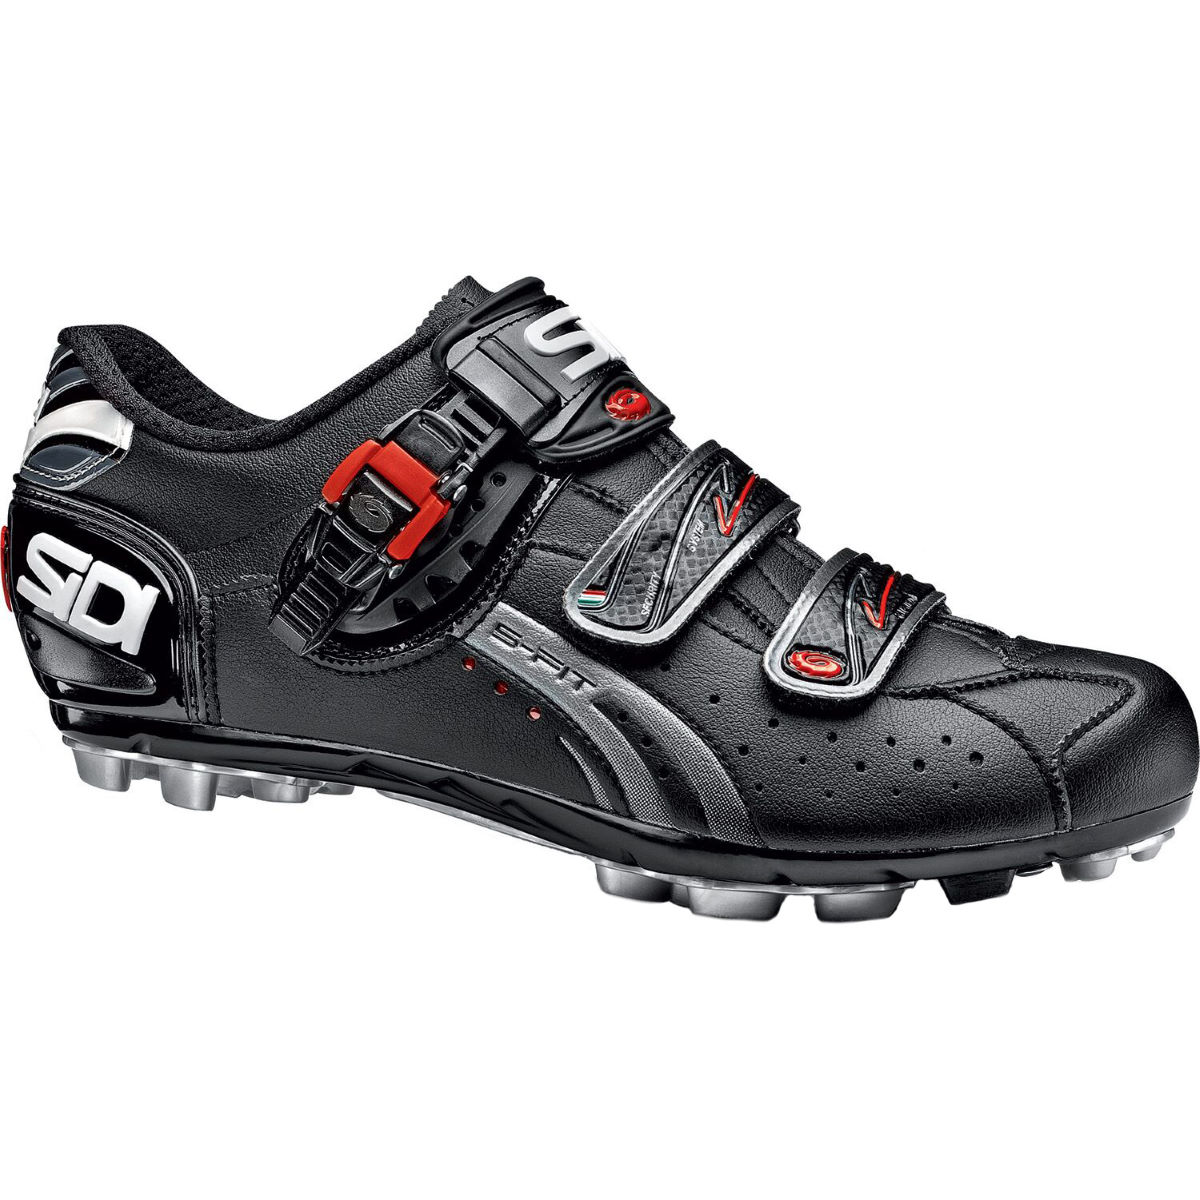 Chaussures VTT Sidi Dominator 5-Fit (coupe mega/large) - 42